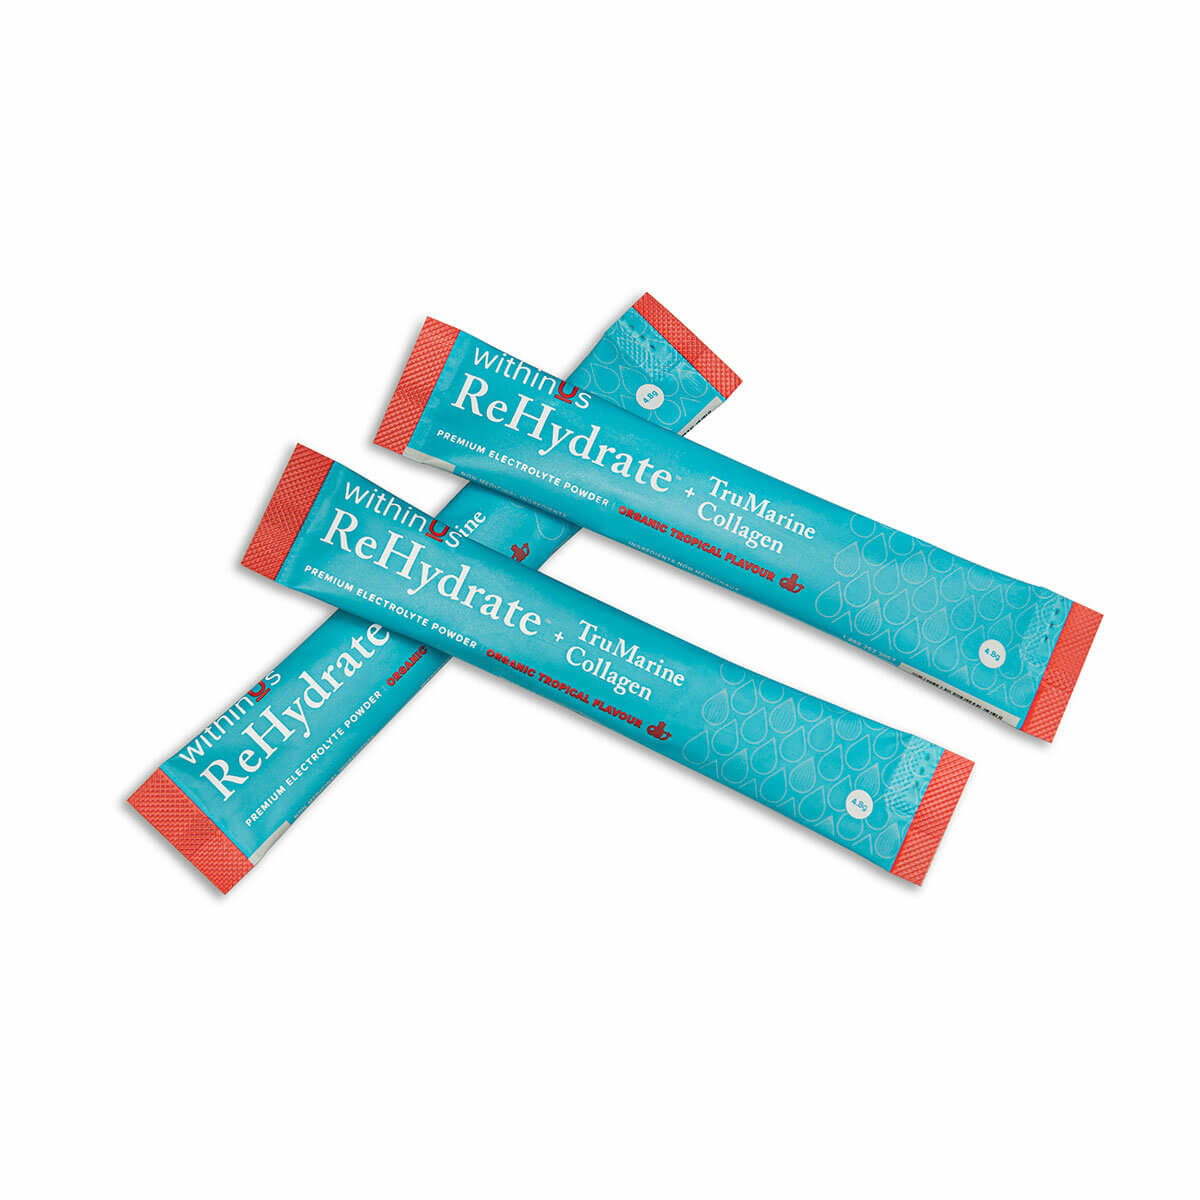 3 teal & orange packs of withinUs ReHydrate + Collagen powder, one of Holly Decker's favourite hydrating skin products